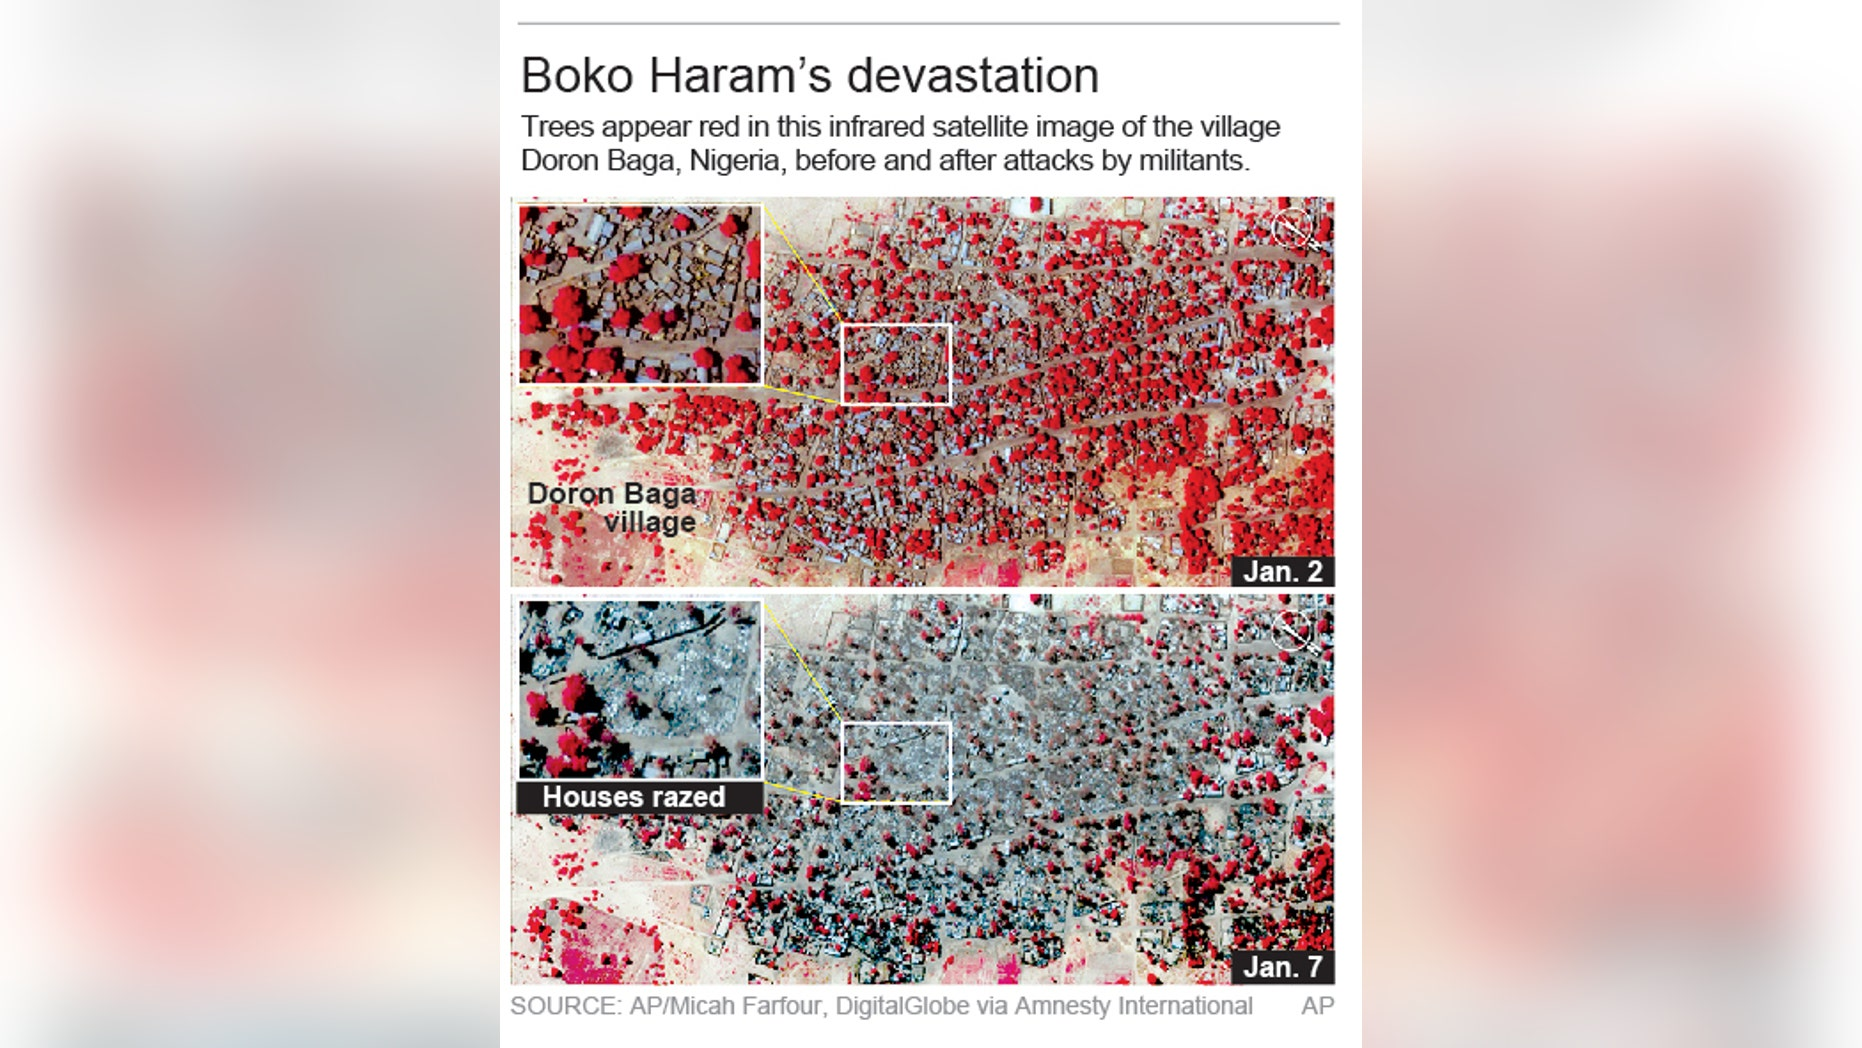 Satellite images shows the village of Doron Baga, Nigeria, before and after an attack by the Boko Haram.; 2c x 6 inches; 96.3 mm x 152 mm;